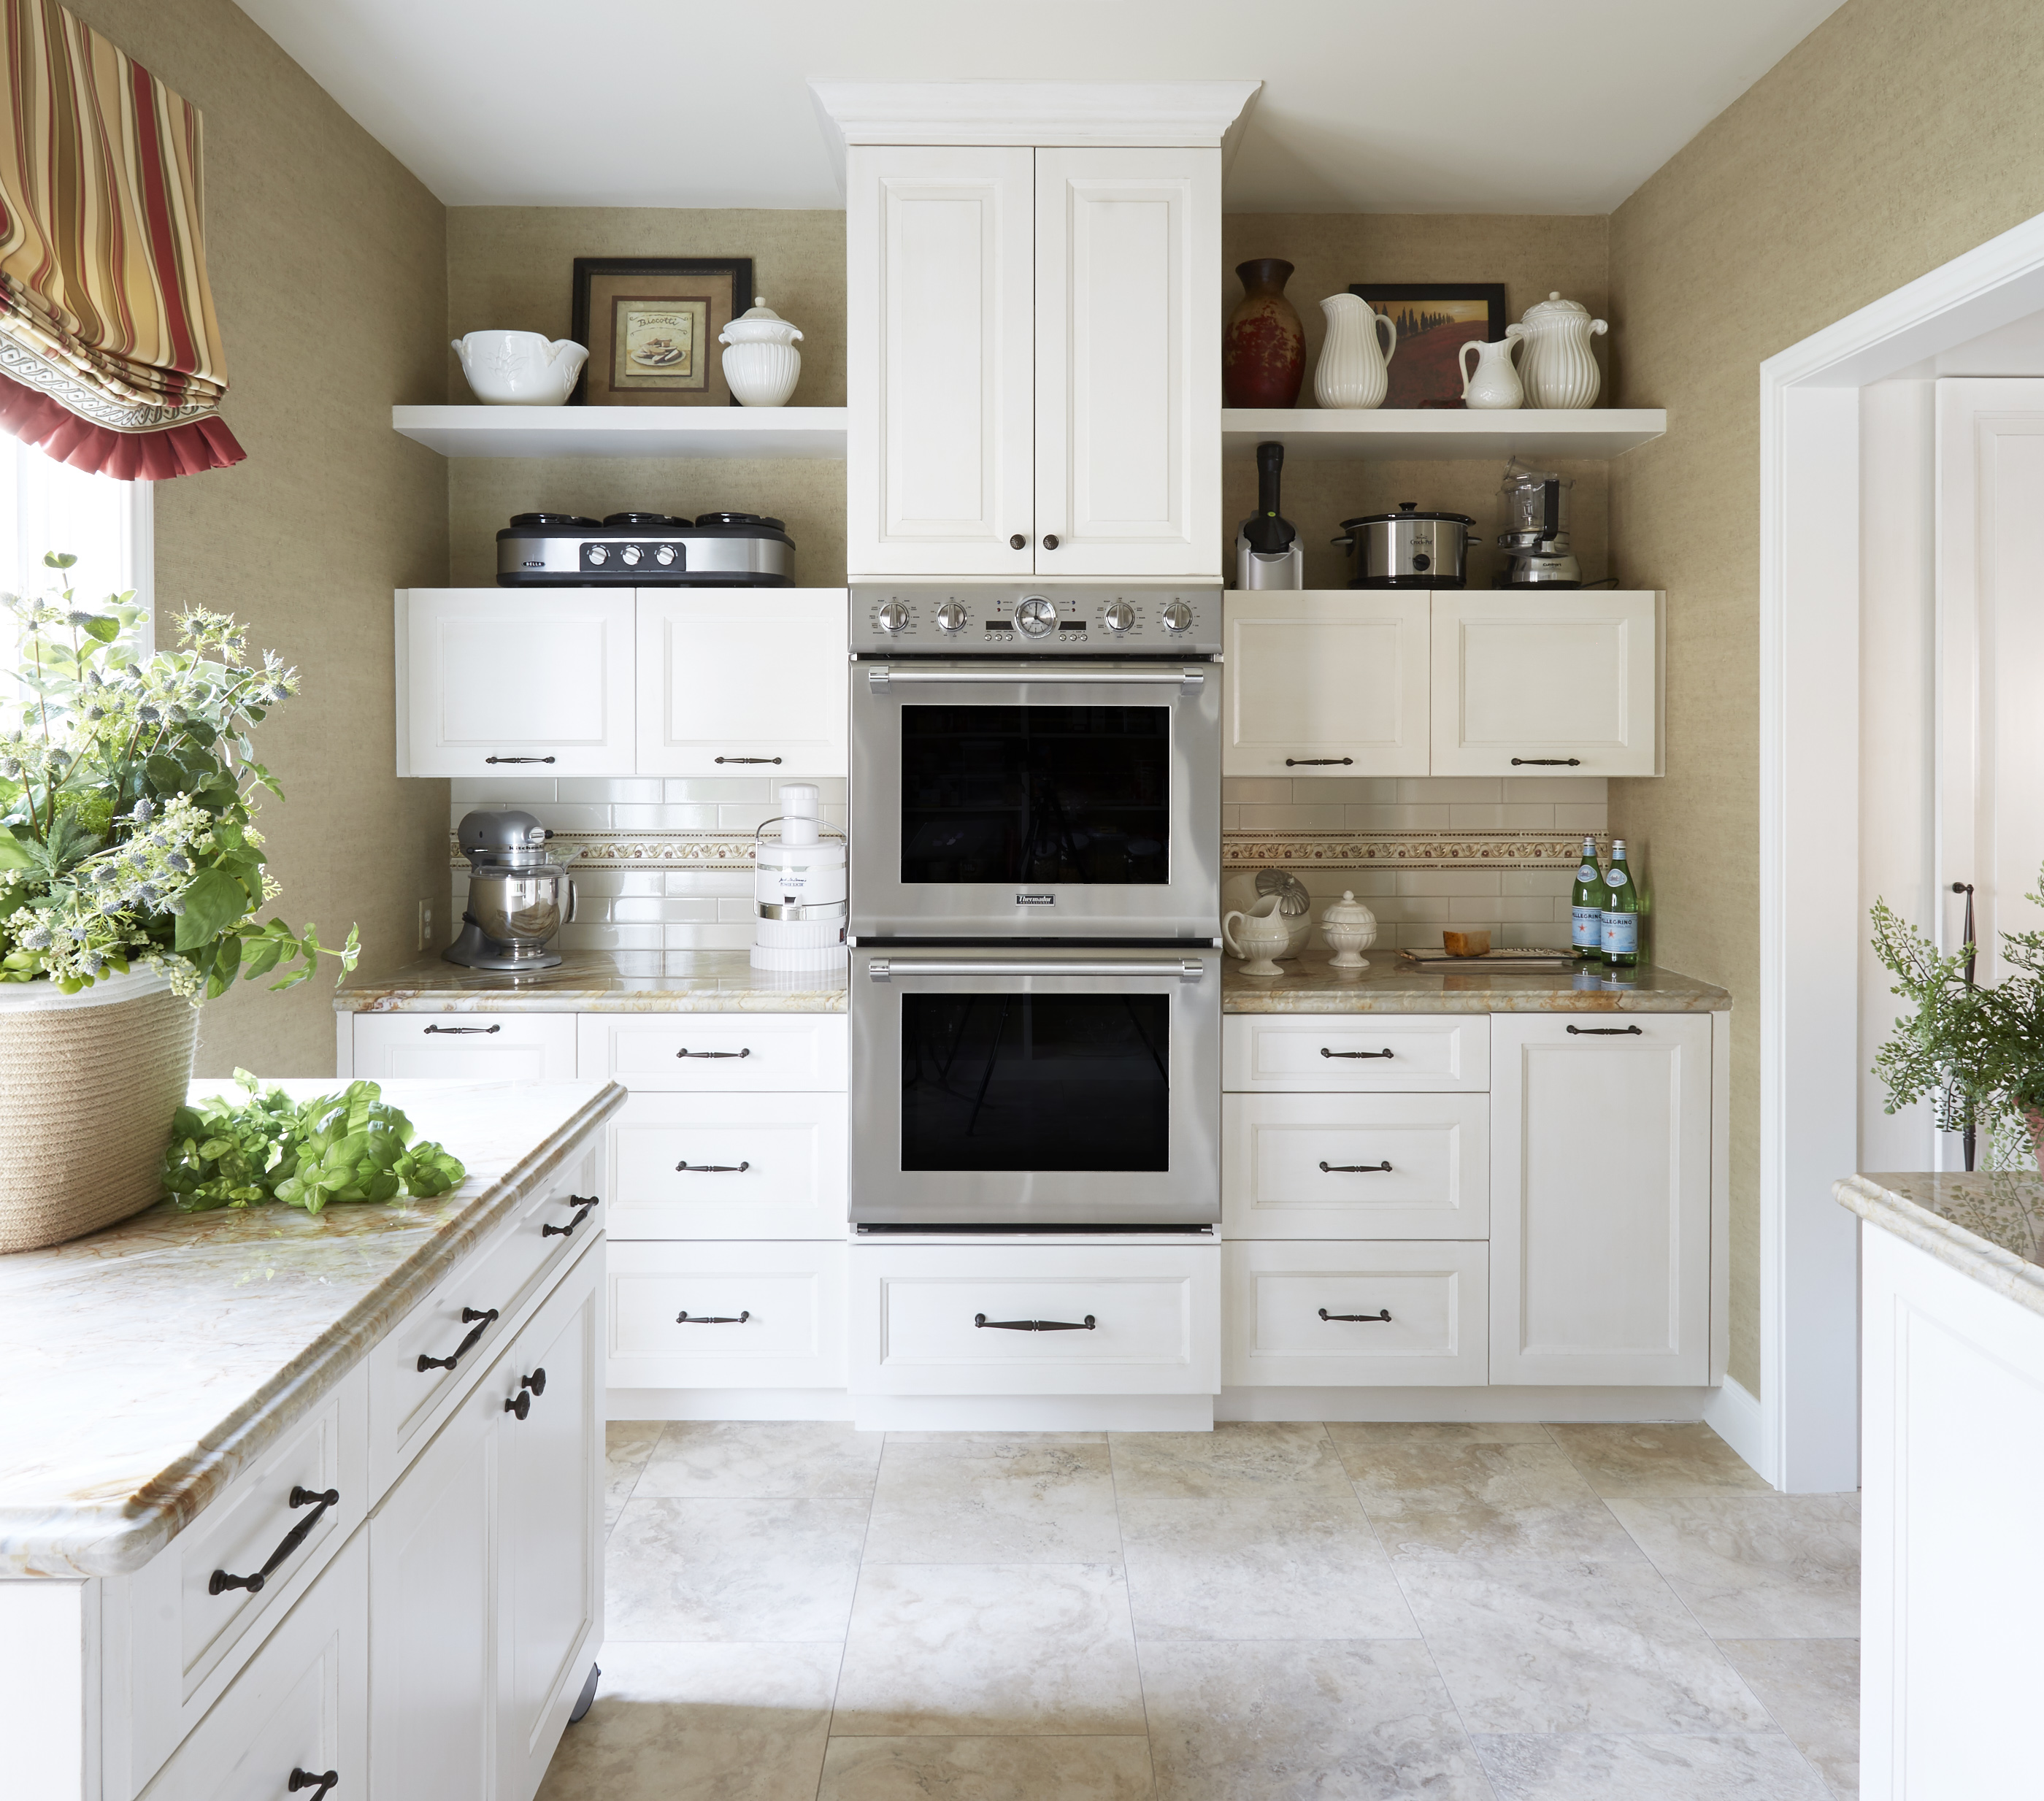 Home Renovations | Morning Star Builders